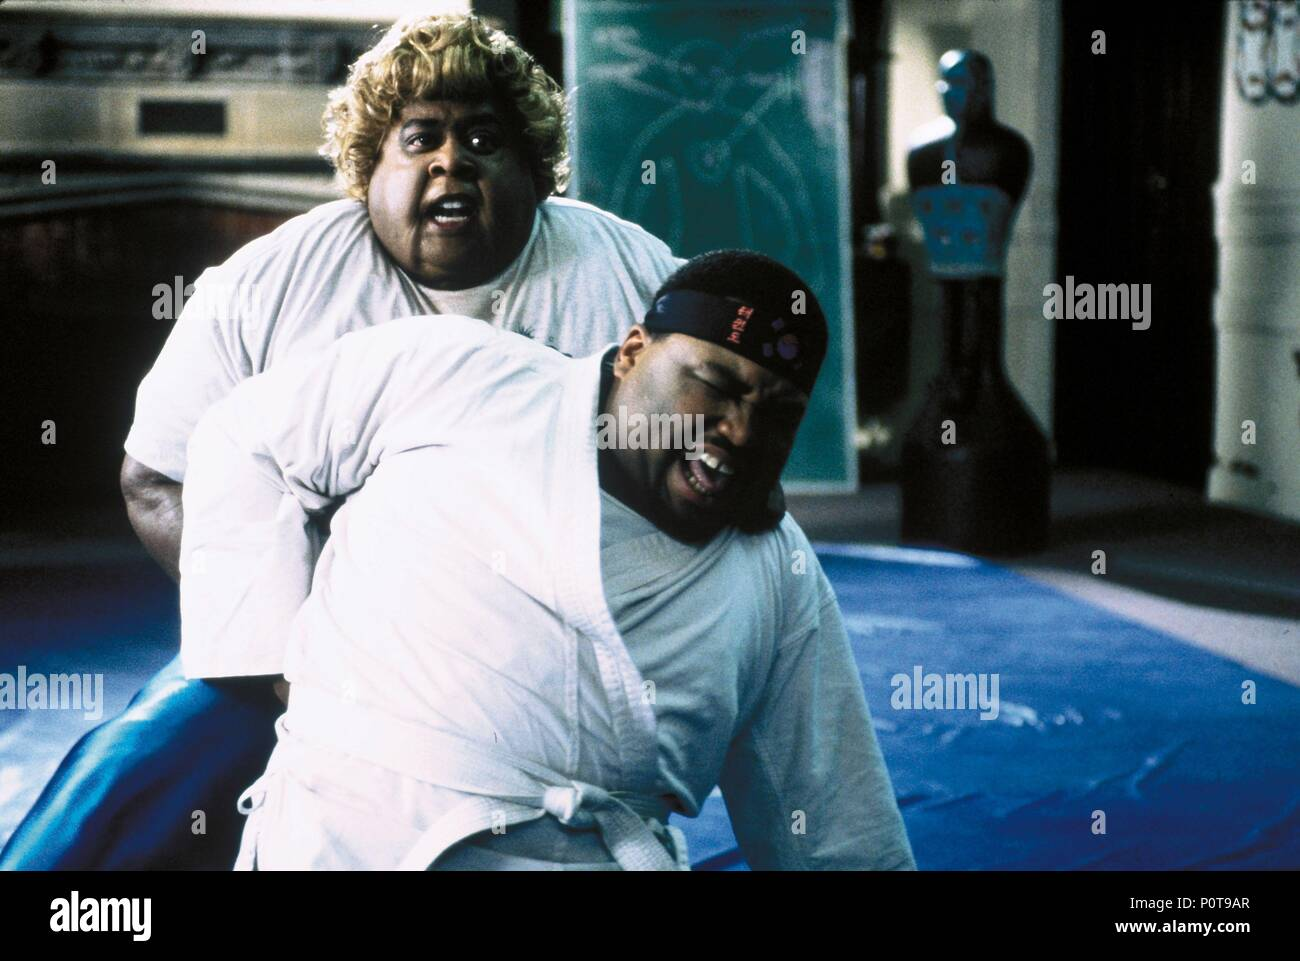 Original Film Title: BIG MOMMA'S HOUSE.  English Title: BIG MOMMA'S HOUSE.  Film Director: RAJA GOSNELL.  Year: 2000.  Stars: ANTHONY ANDERSON; MARTIN LAWRENCE. Credit: FOX FILMS / GOODE, NICOLA / Album - Stock Image